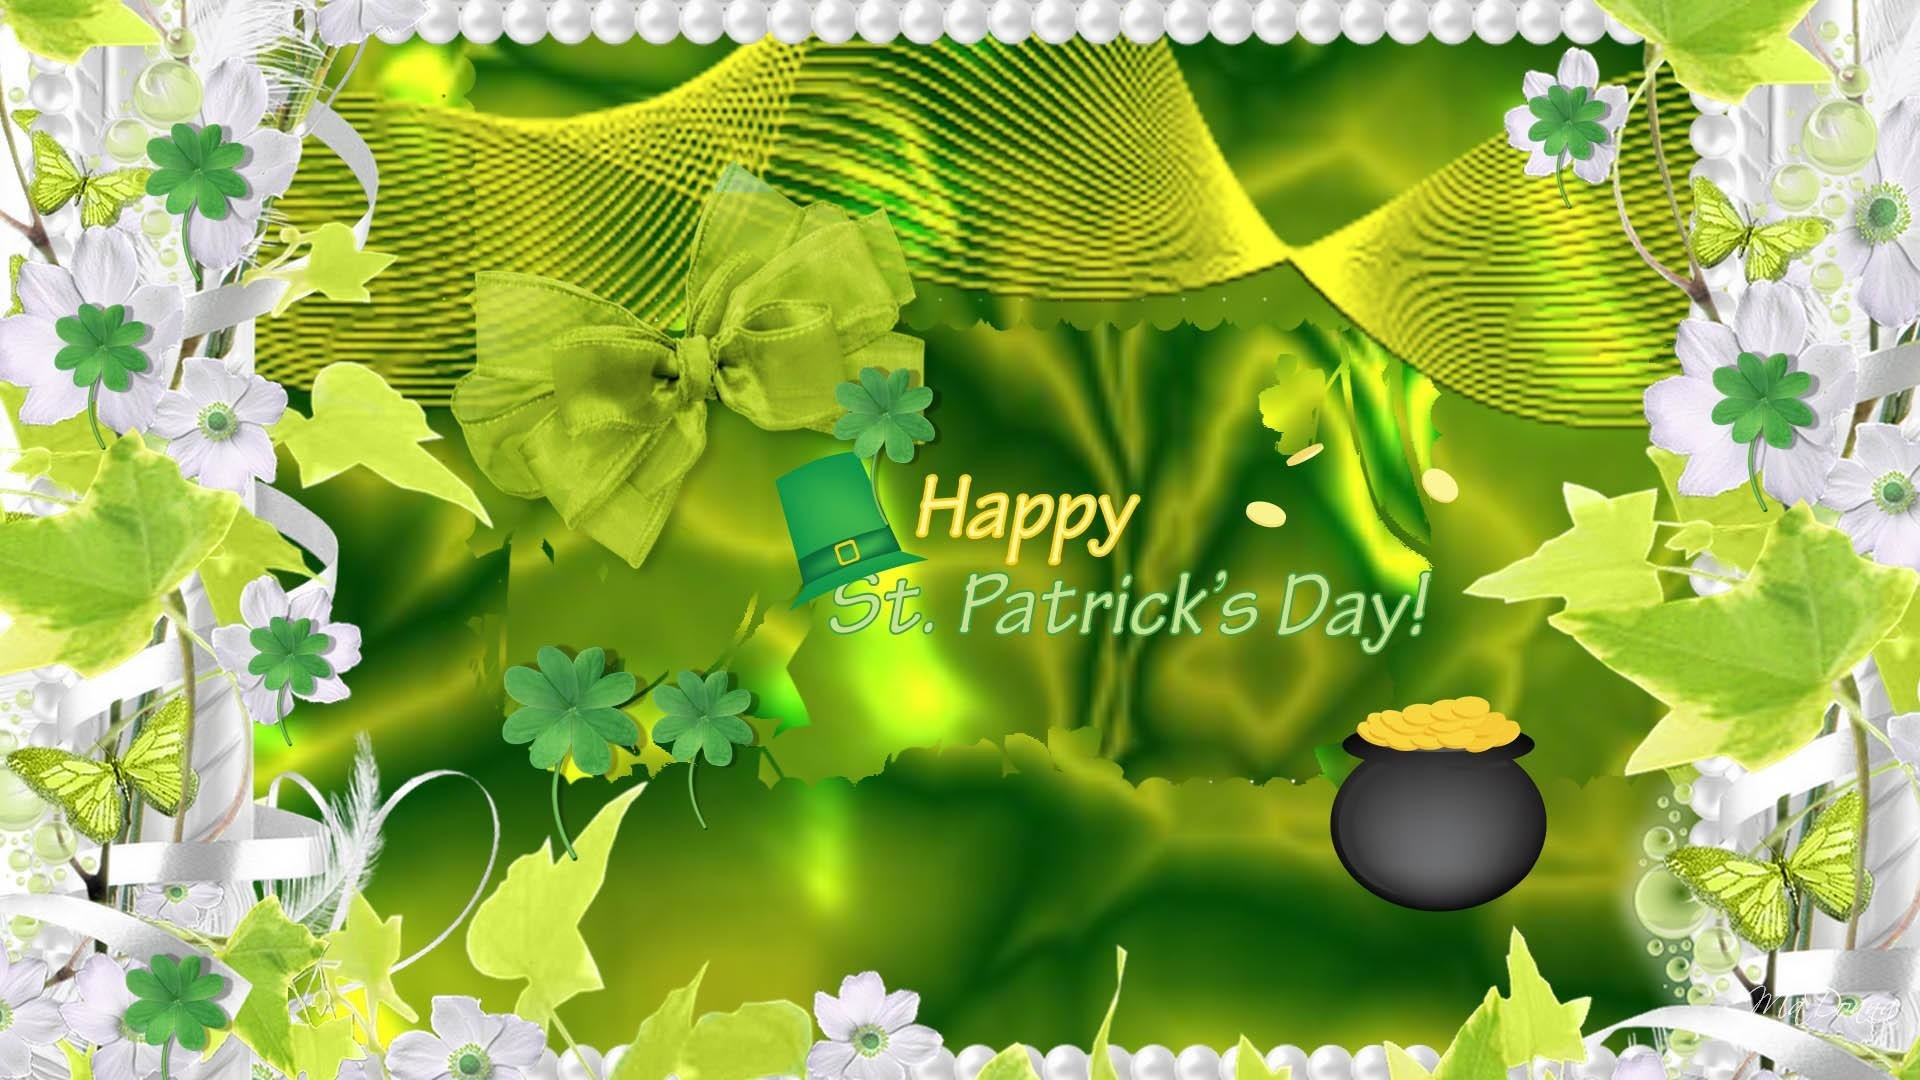 St Patrick S Day Wallpapers 1920x1080 Full Hd 1080p Desktop